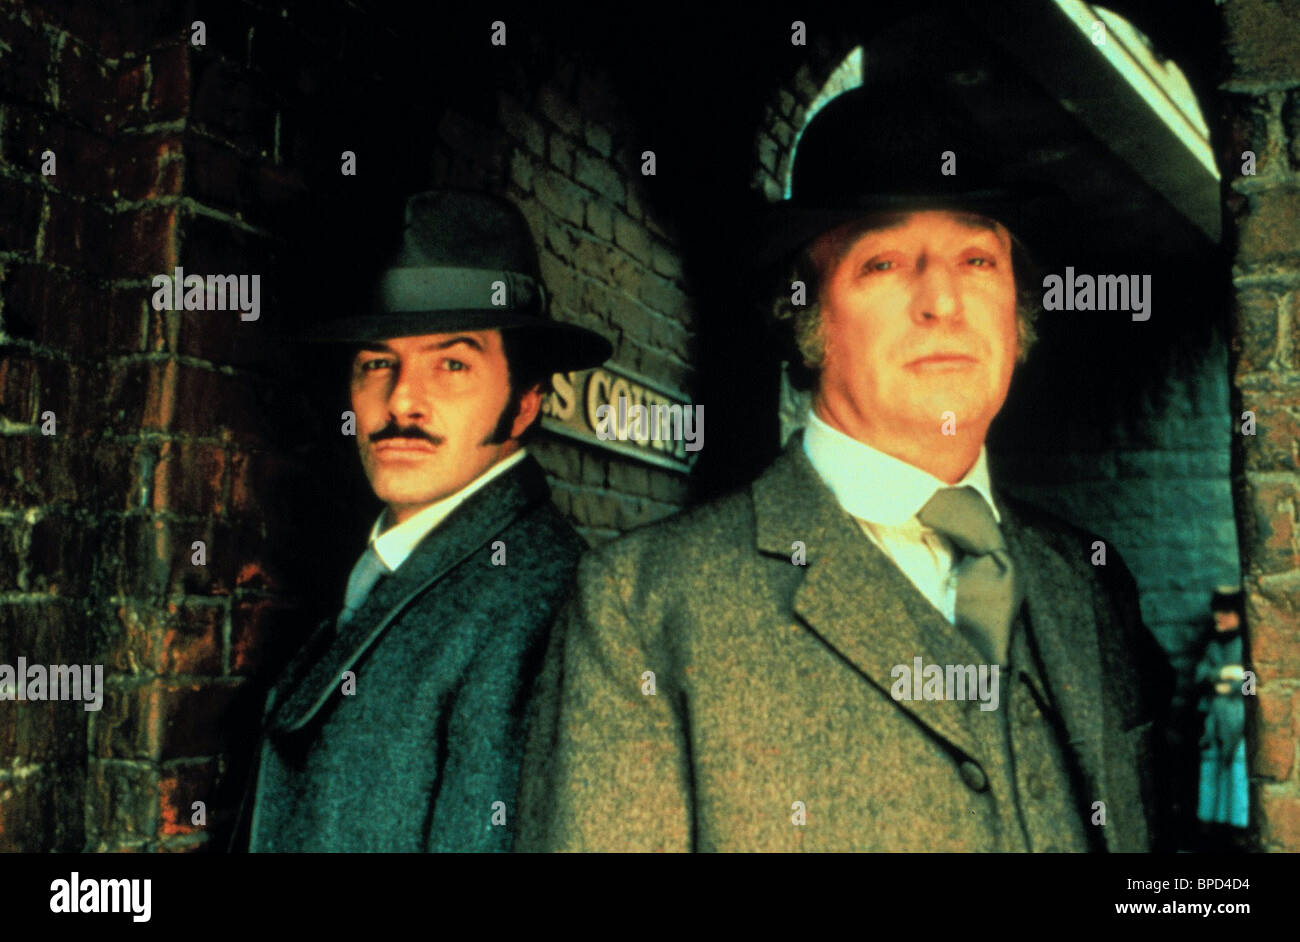 jack the ripper 1988 full movie download